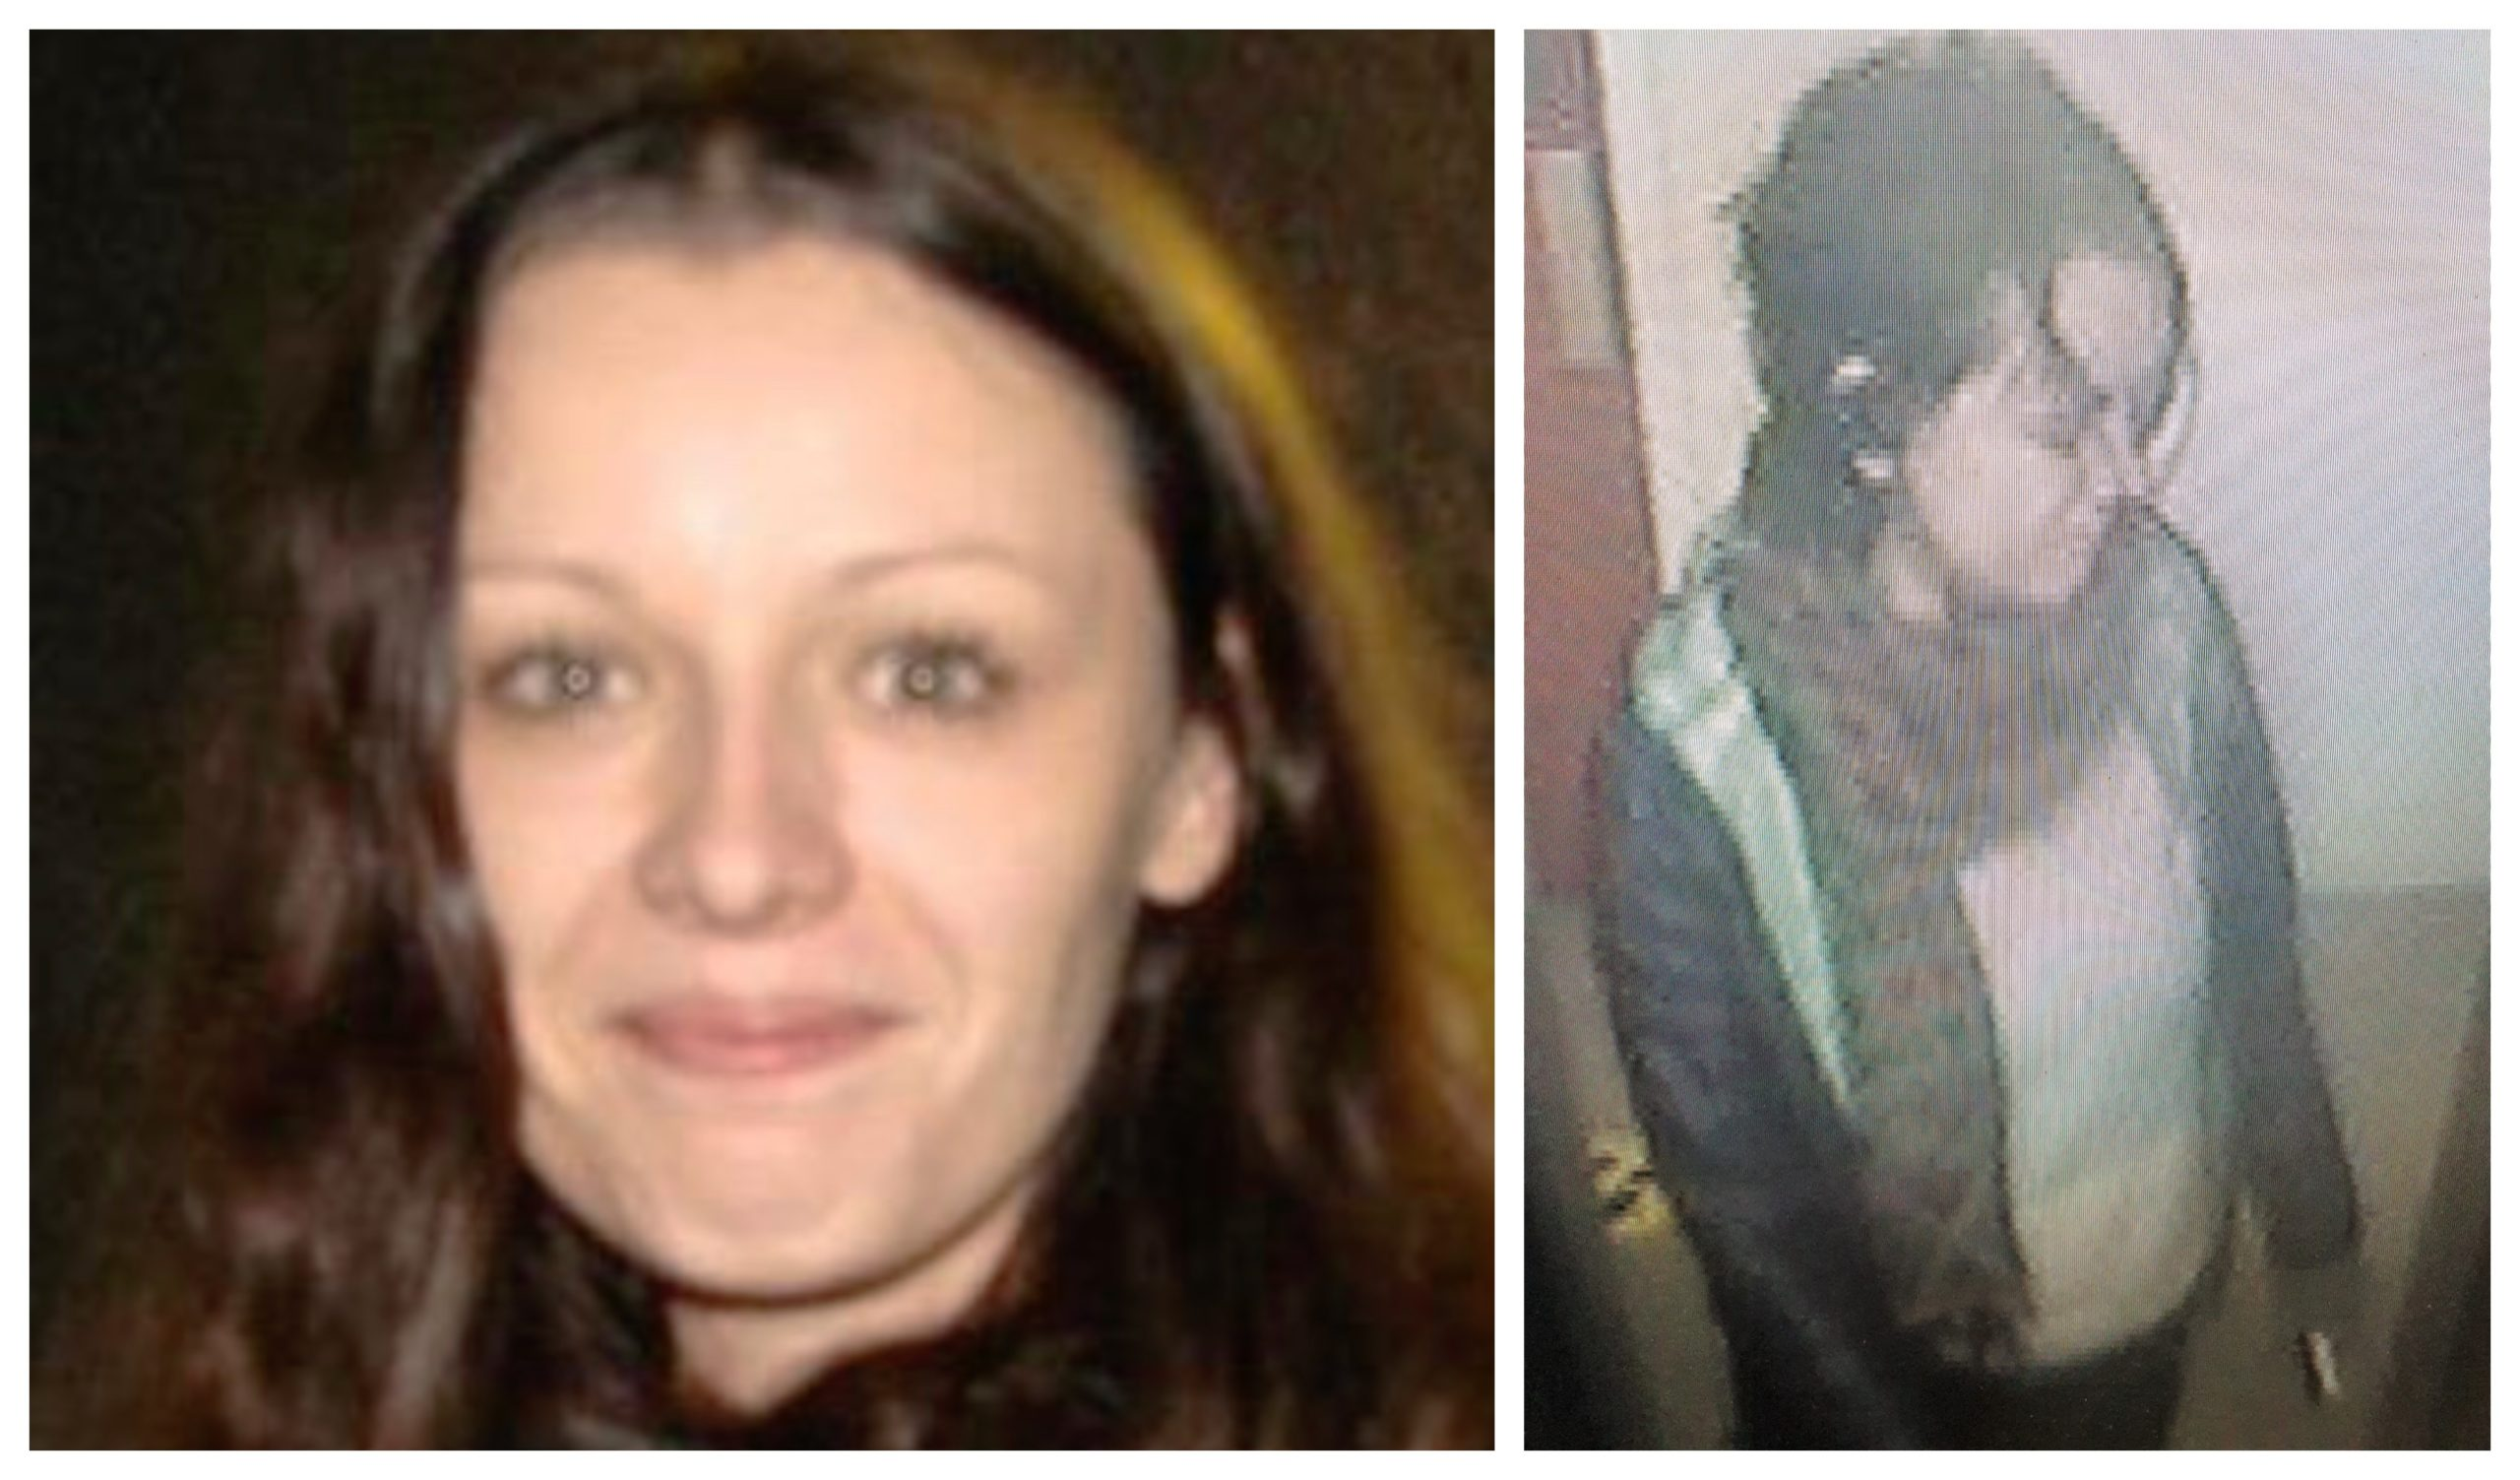 Veronika has been missing since Monday, when she was captured on CCTV leaving her flat.